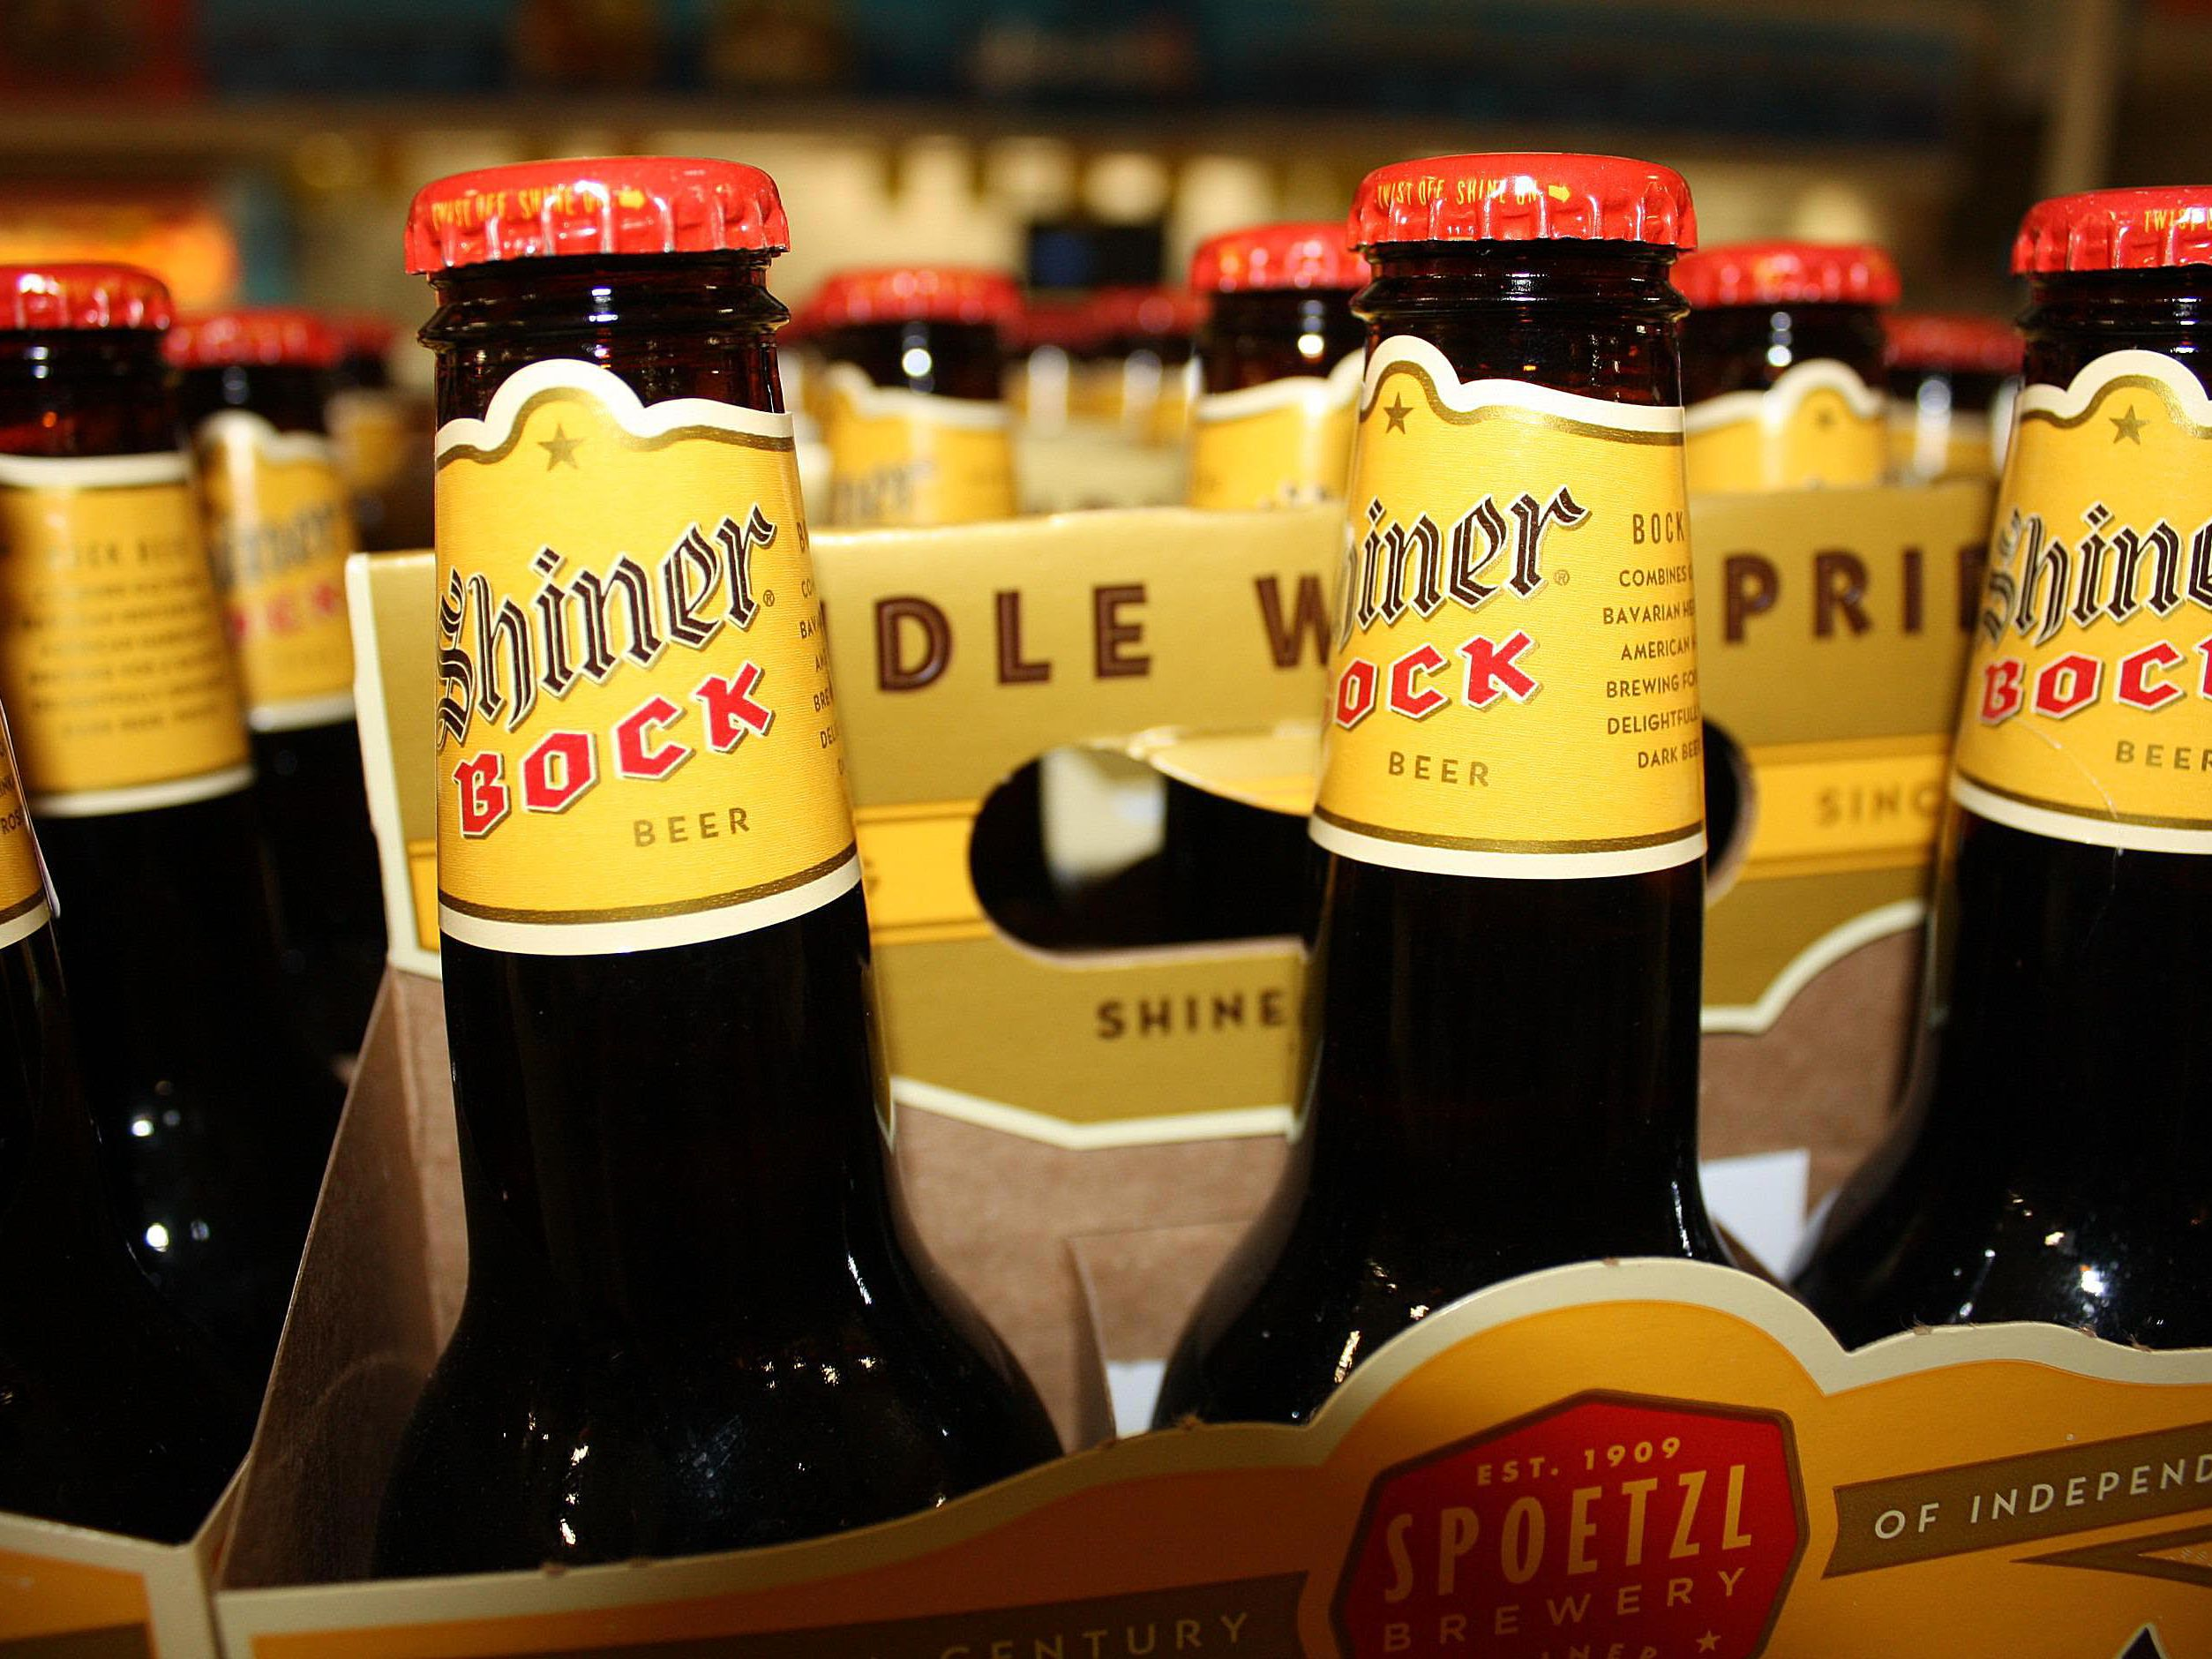 Review of Shiner Bock, the Sweet Beer of Texas